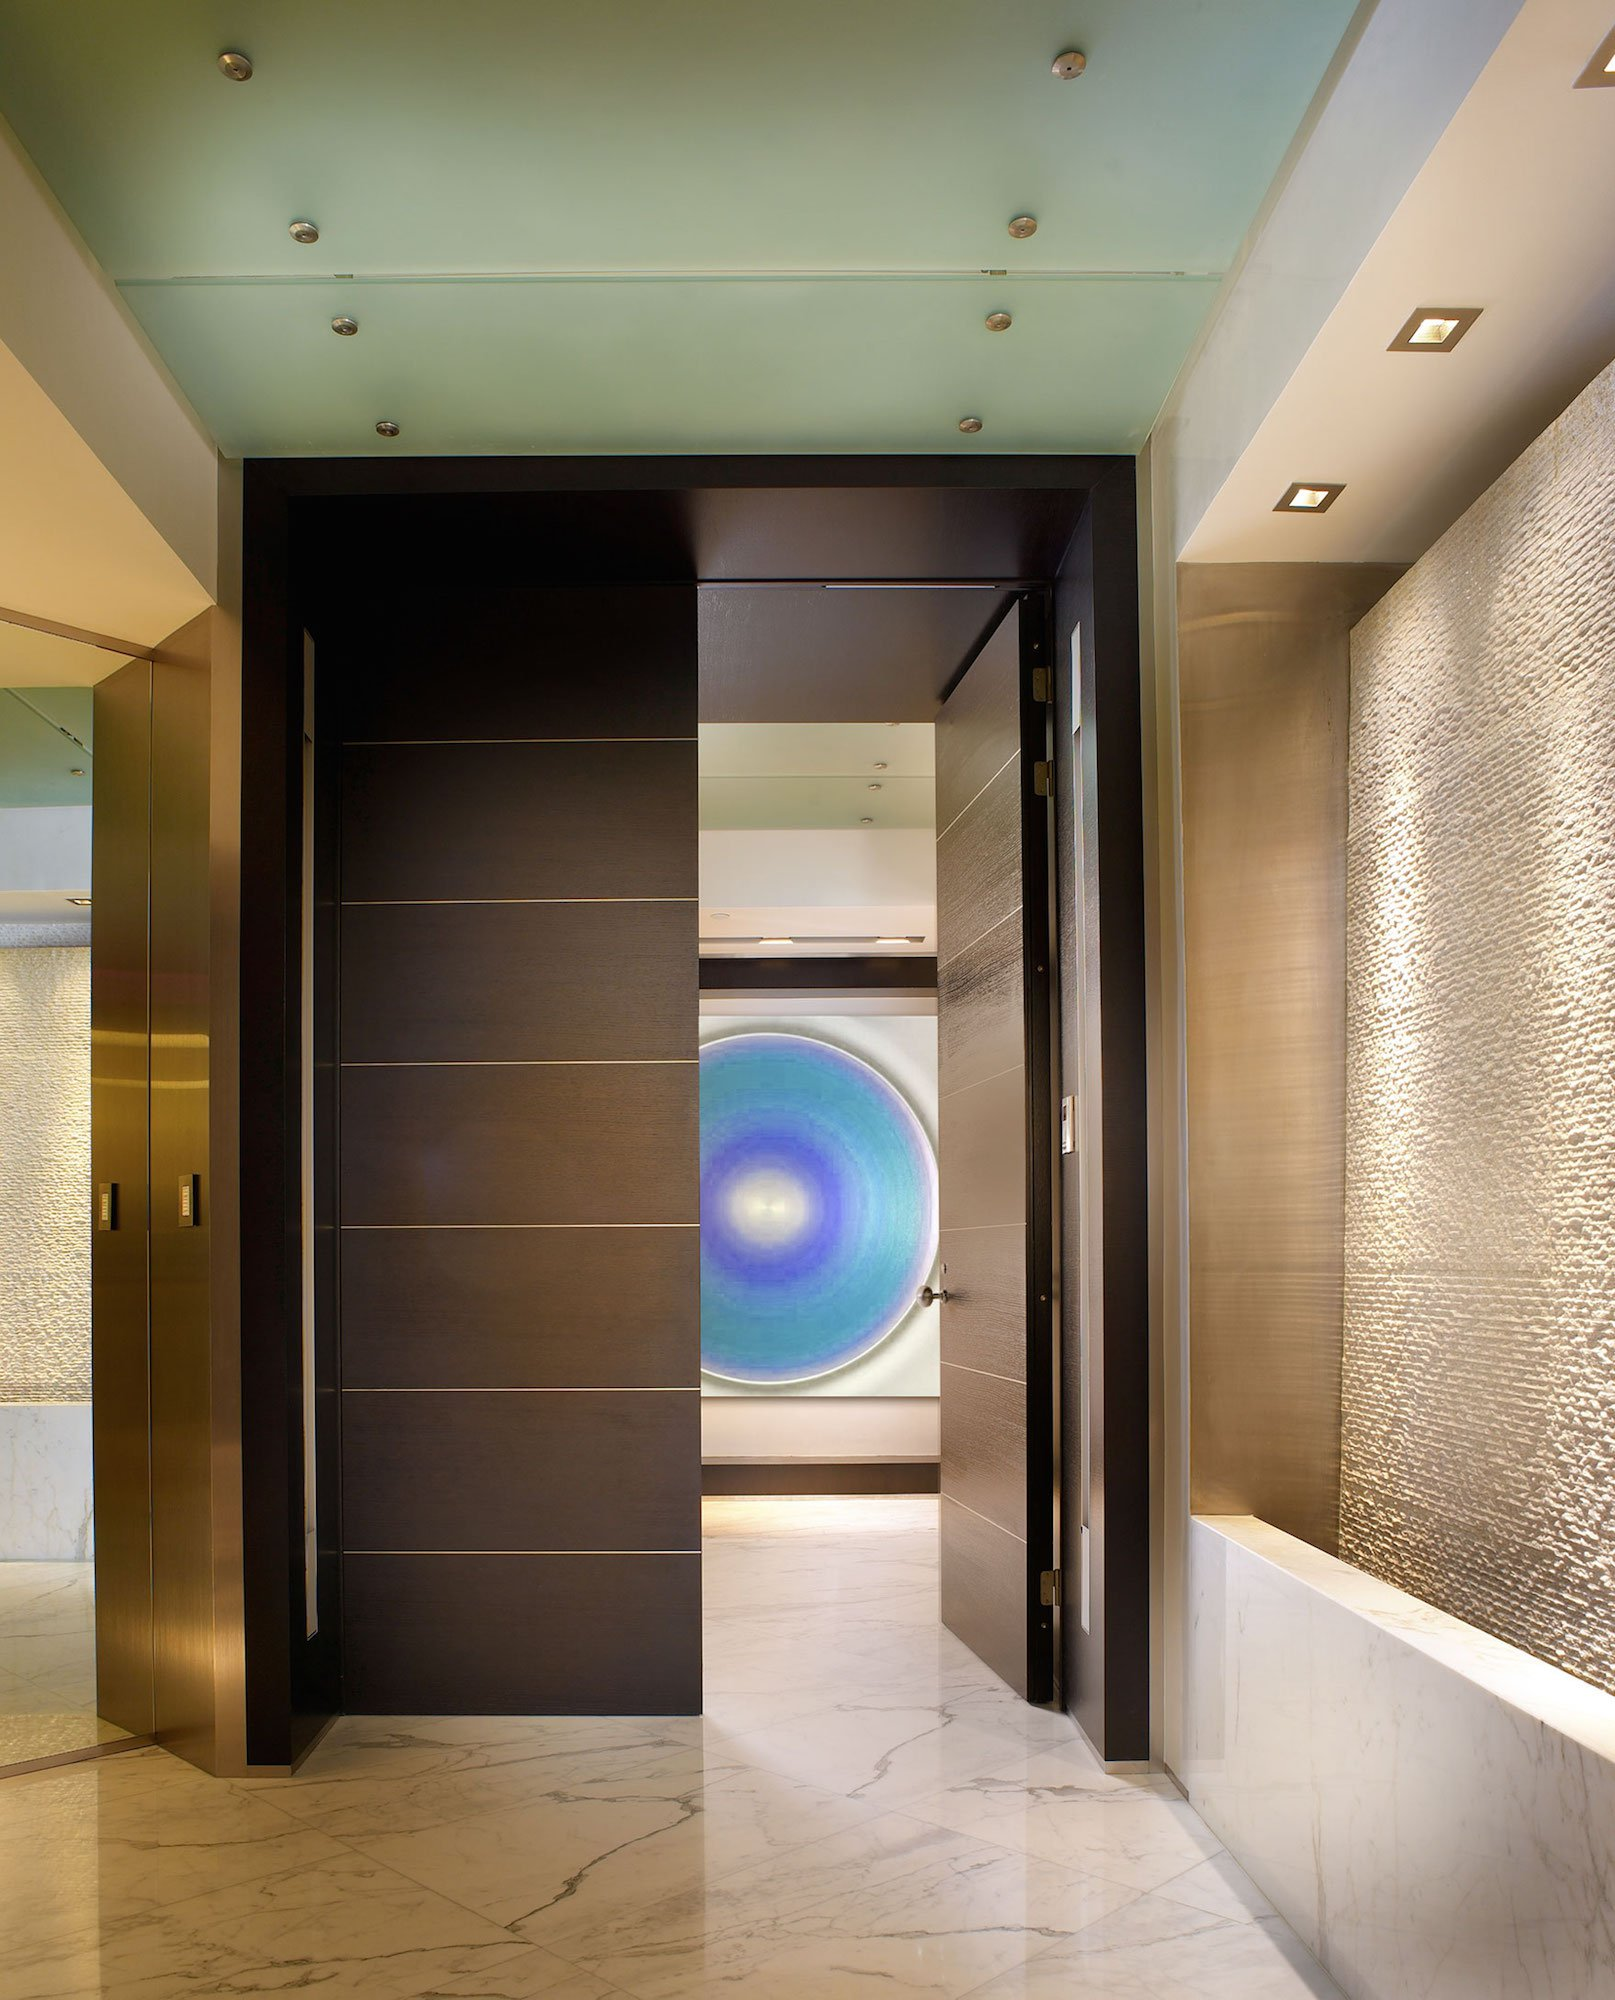 Residence in palazzo del mare by pepe calderin design for Entrance foyer design